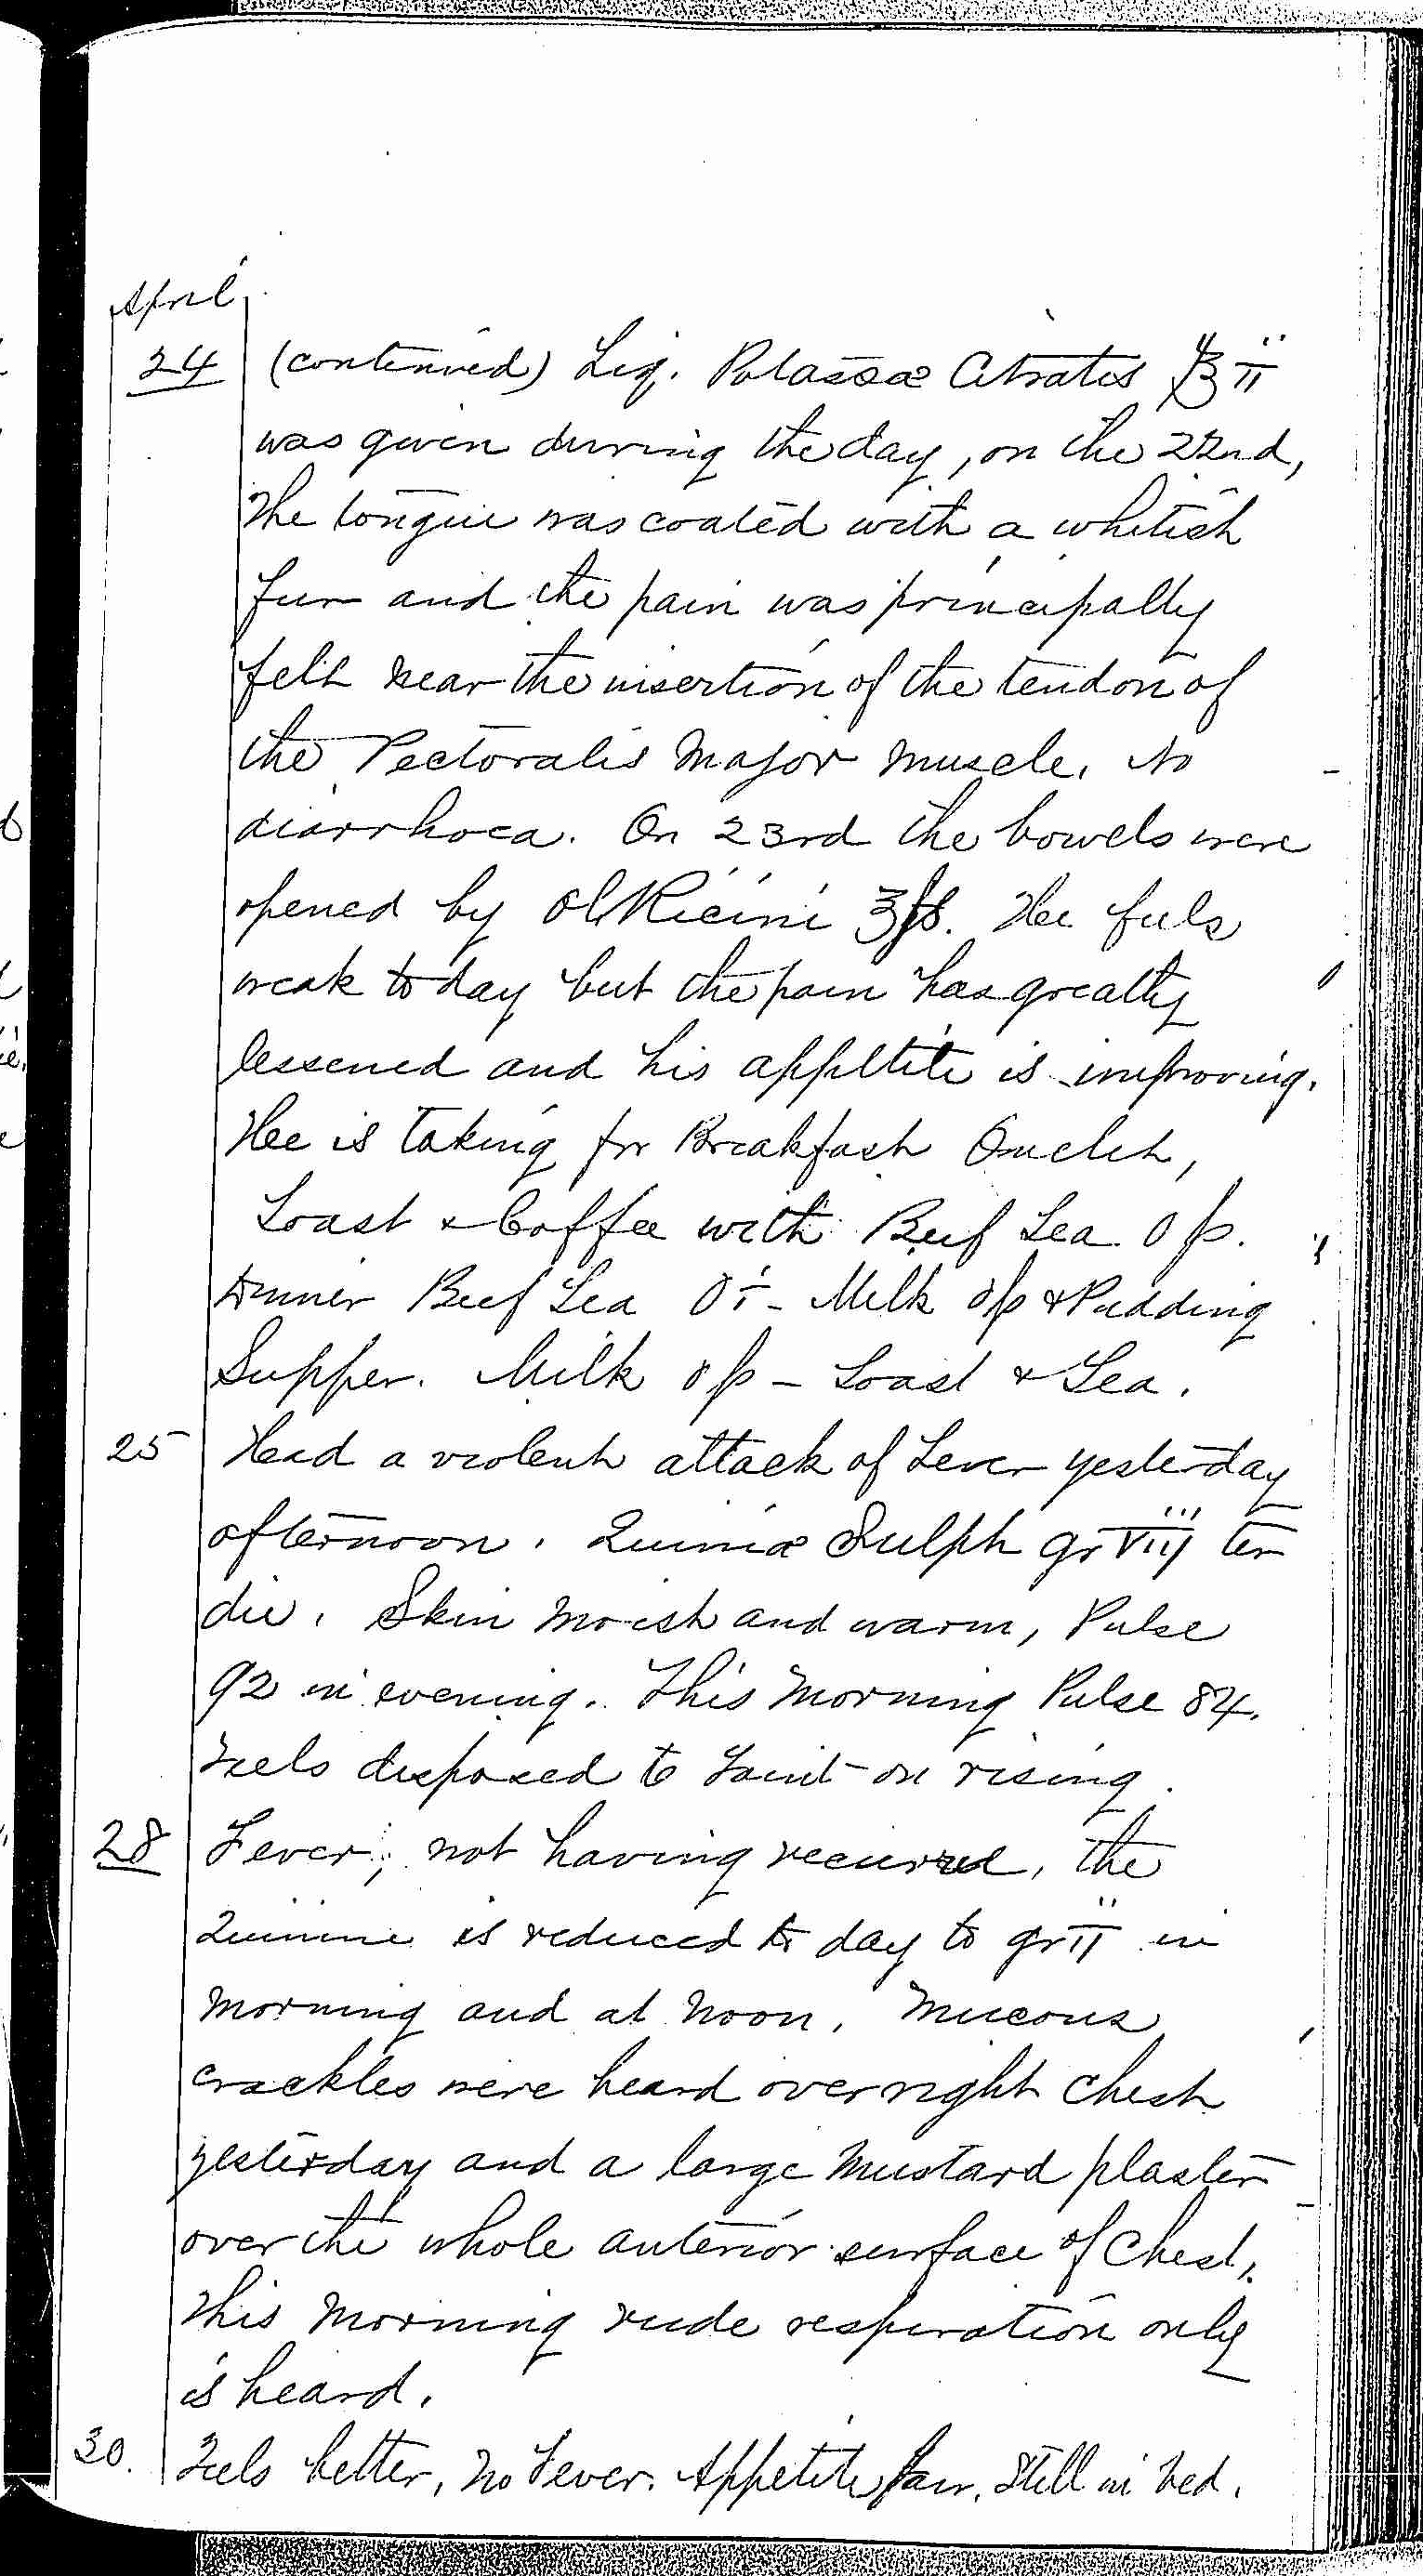 Entry for Peter C. Cheeks (page 13 of 16) in the log Hospital Tickets and Case Papers - Naval Hospital - Washington, D.C. - 1868-69